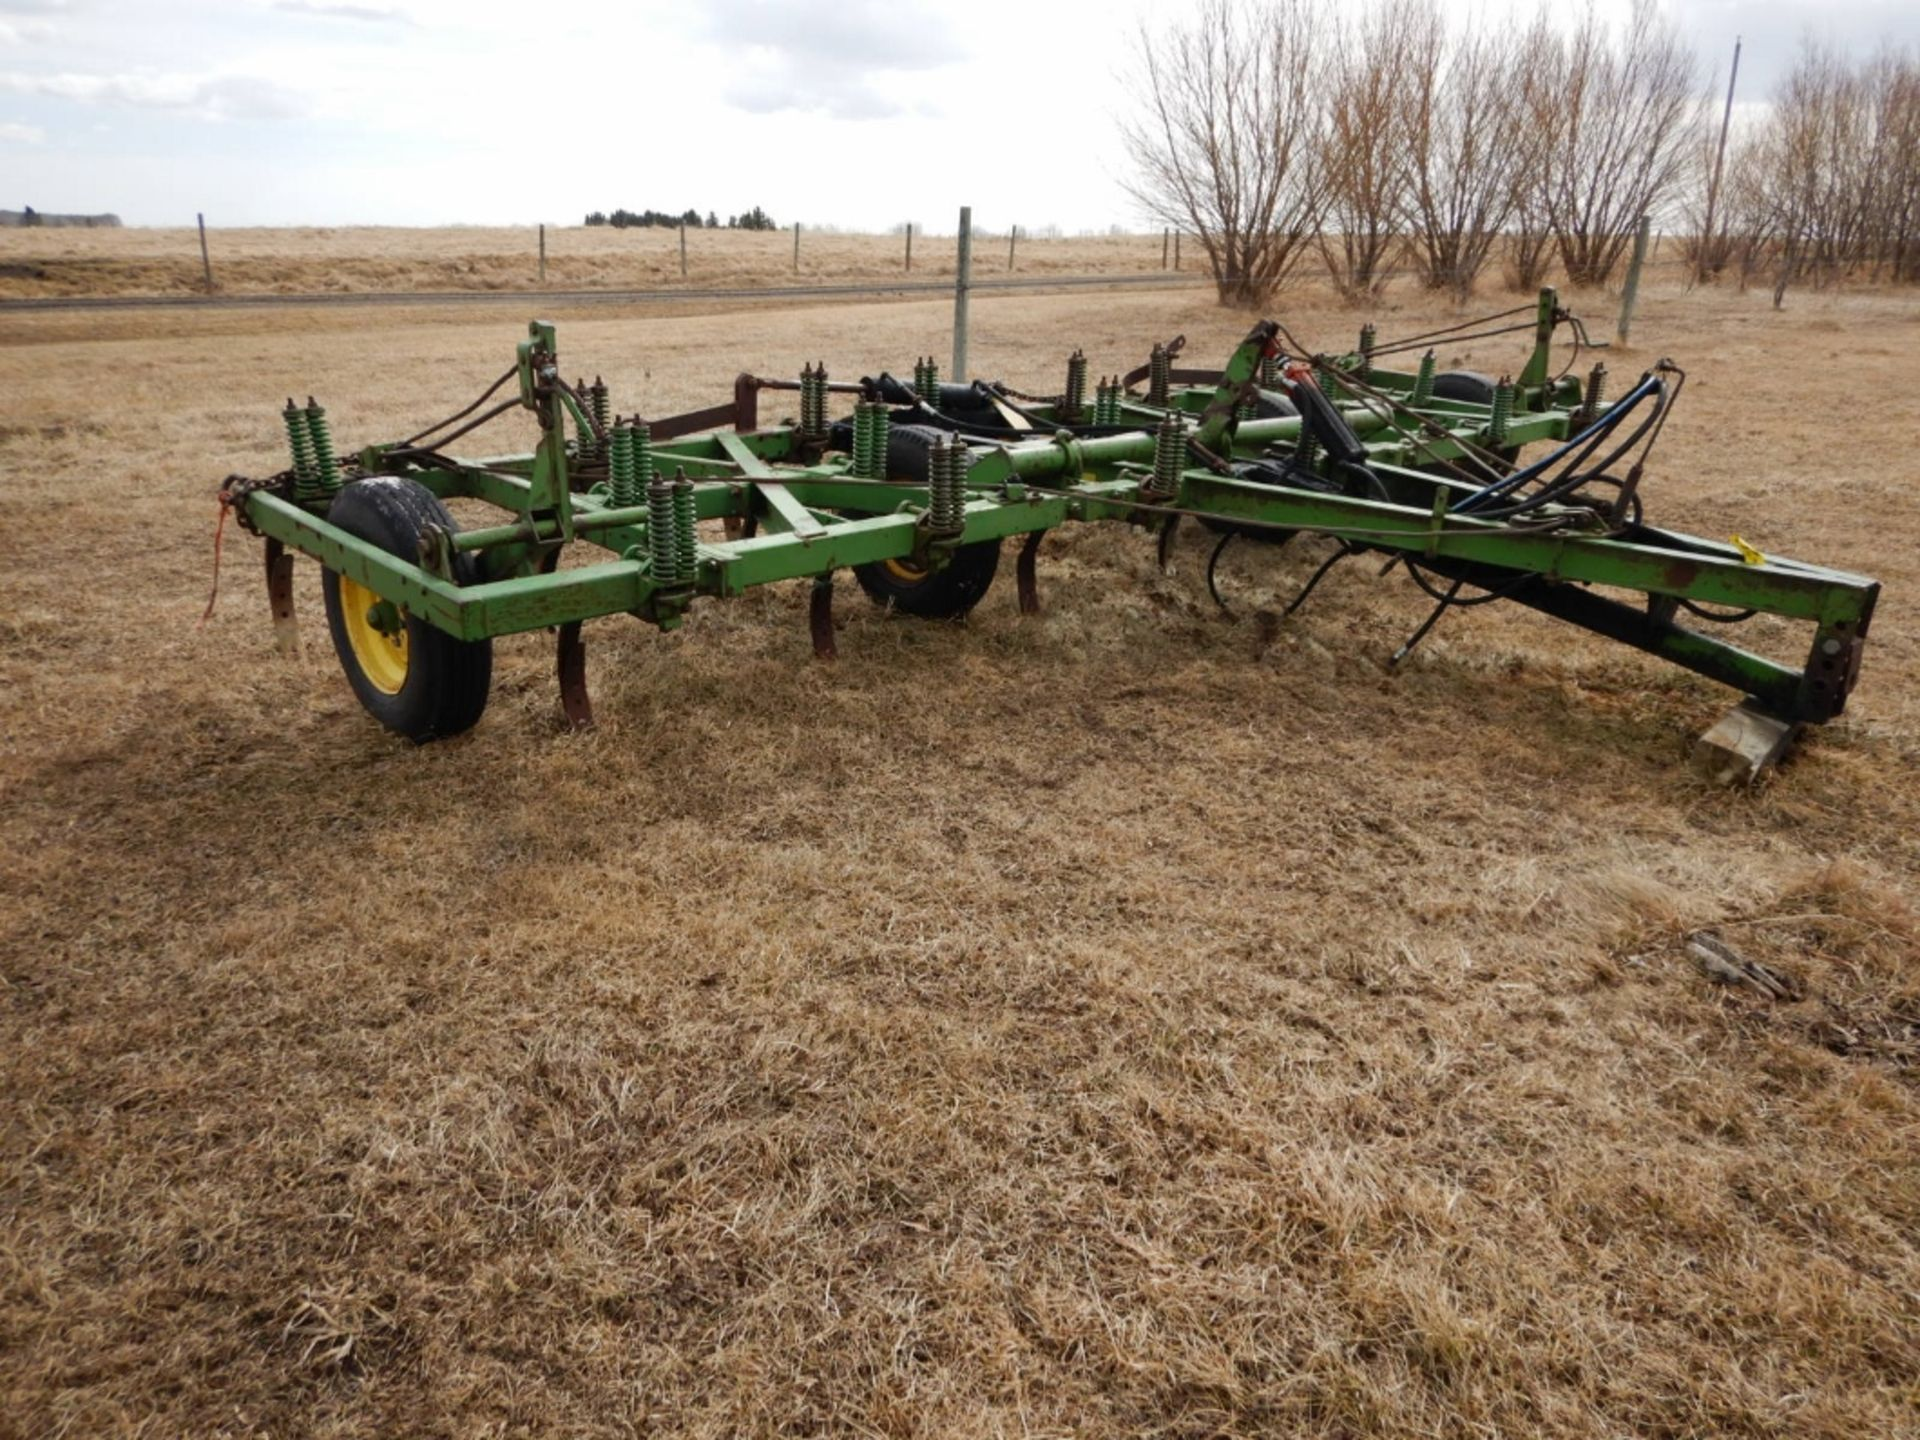 JD 18 FT DEEP TILLAGE CULTIVATOR W/SPIKES - Image 4 of 4